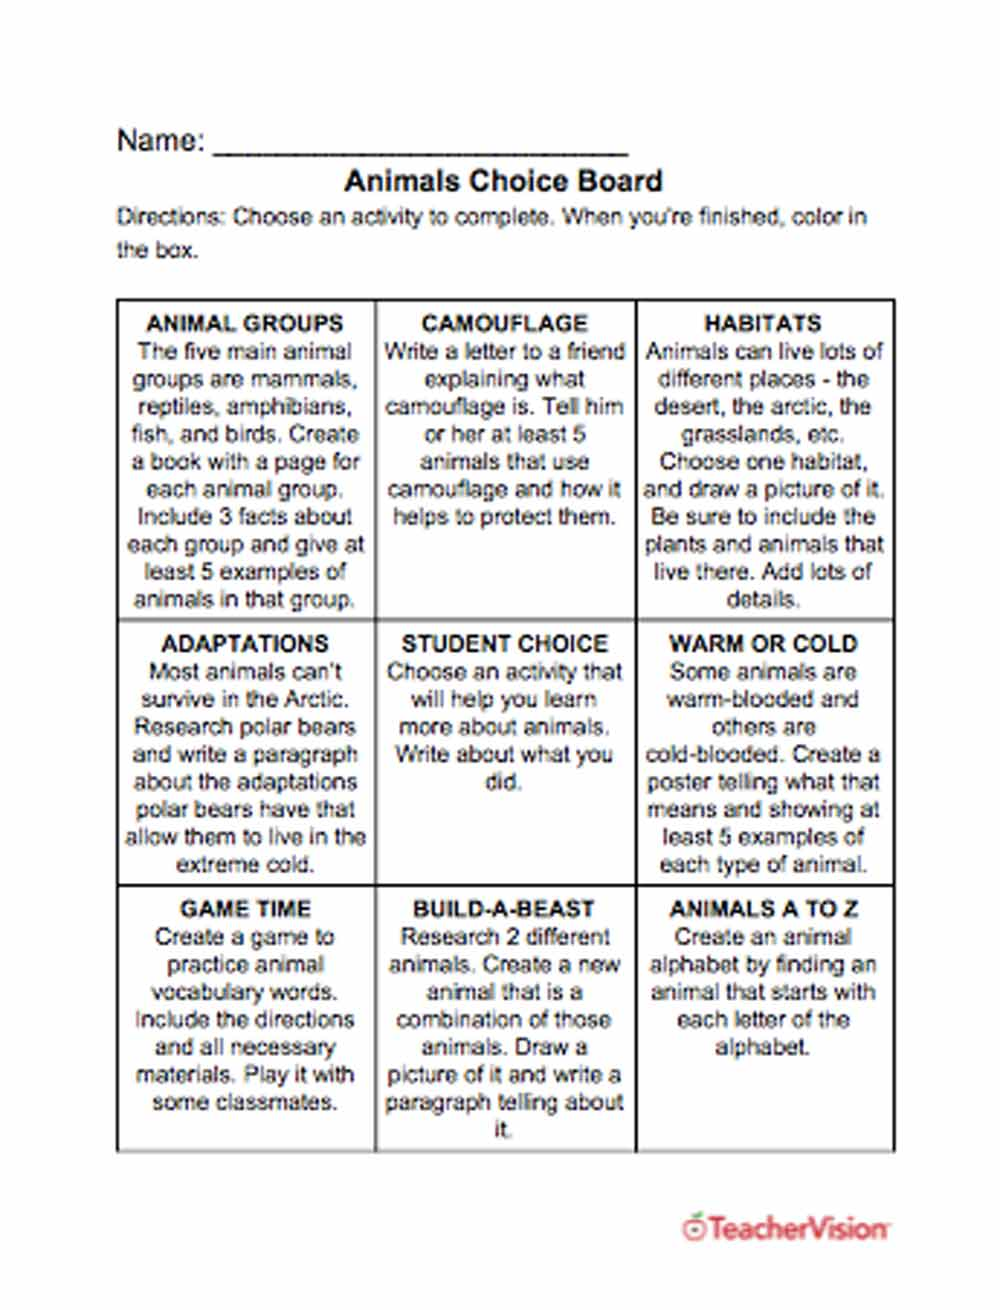 medium resolution of Animals Choice Board - TeacherVision